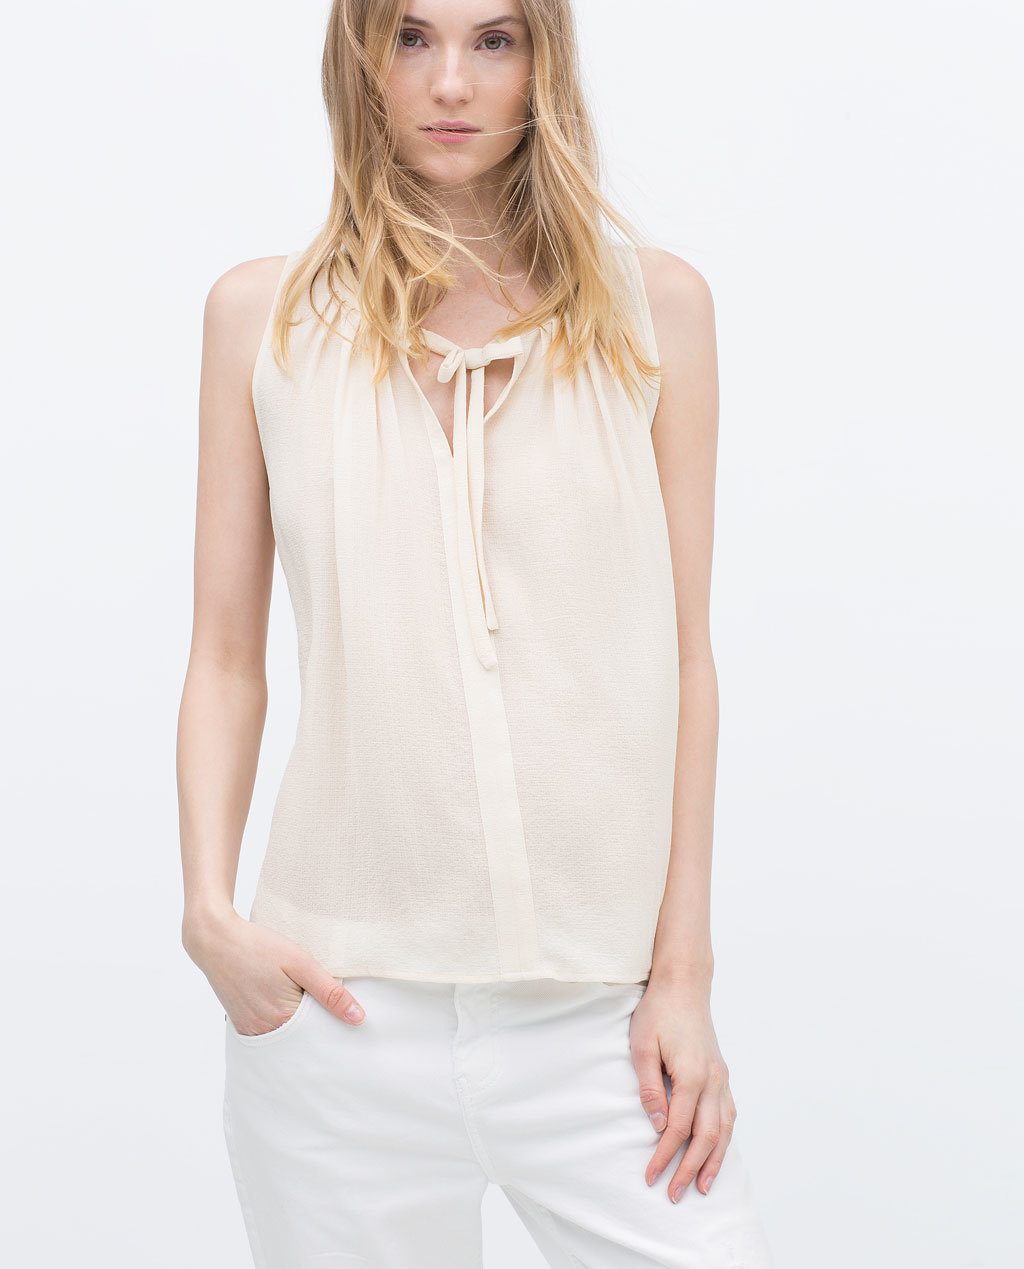 Pleated Full Top - pattern: plain; sleeve style: sleeveless; neckline: pussy bow; style: blouse; predominant colour: ivory/cream; occasions: casual, creative work; length: standard; fibres: polyester/polyamide - 100%; fit: straight cut; sleeve length: sleeveless; texture group: sheer fabrics/chiffon/organza etc.; pattern type: fabric; season: s/s 2015; wardrobe: highlight